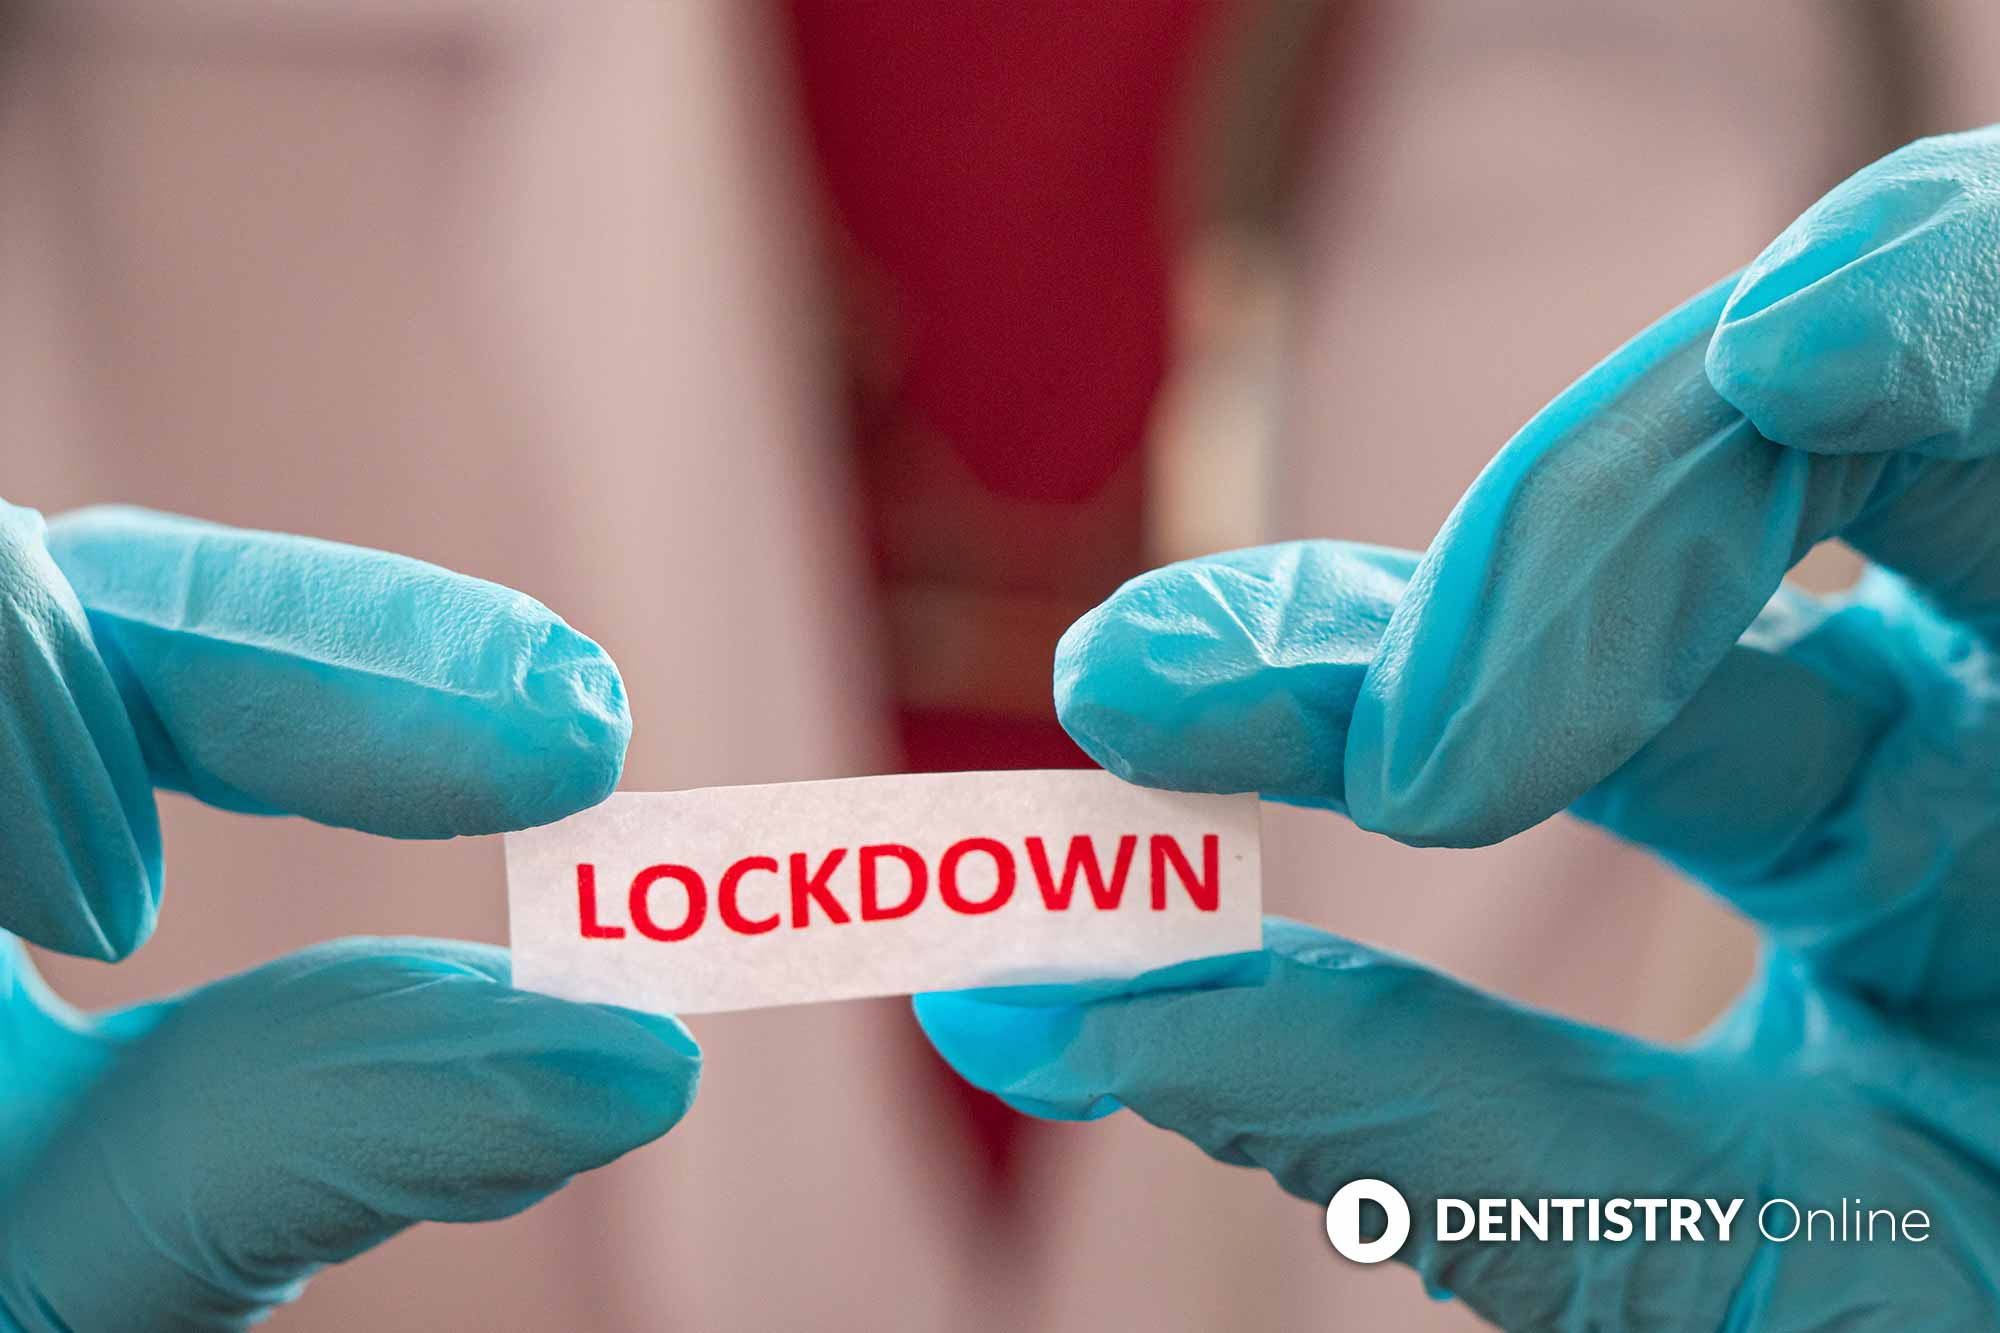 The dental profession is urging the government to rethink new NHS contract targets in the face of the new national lockdown